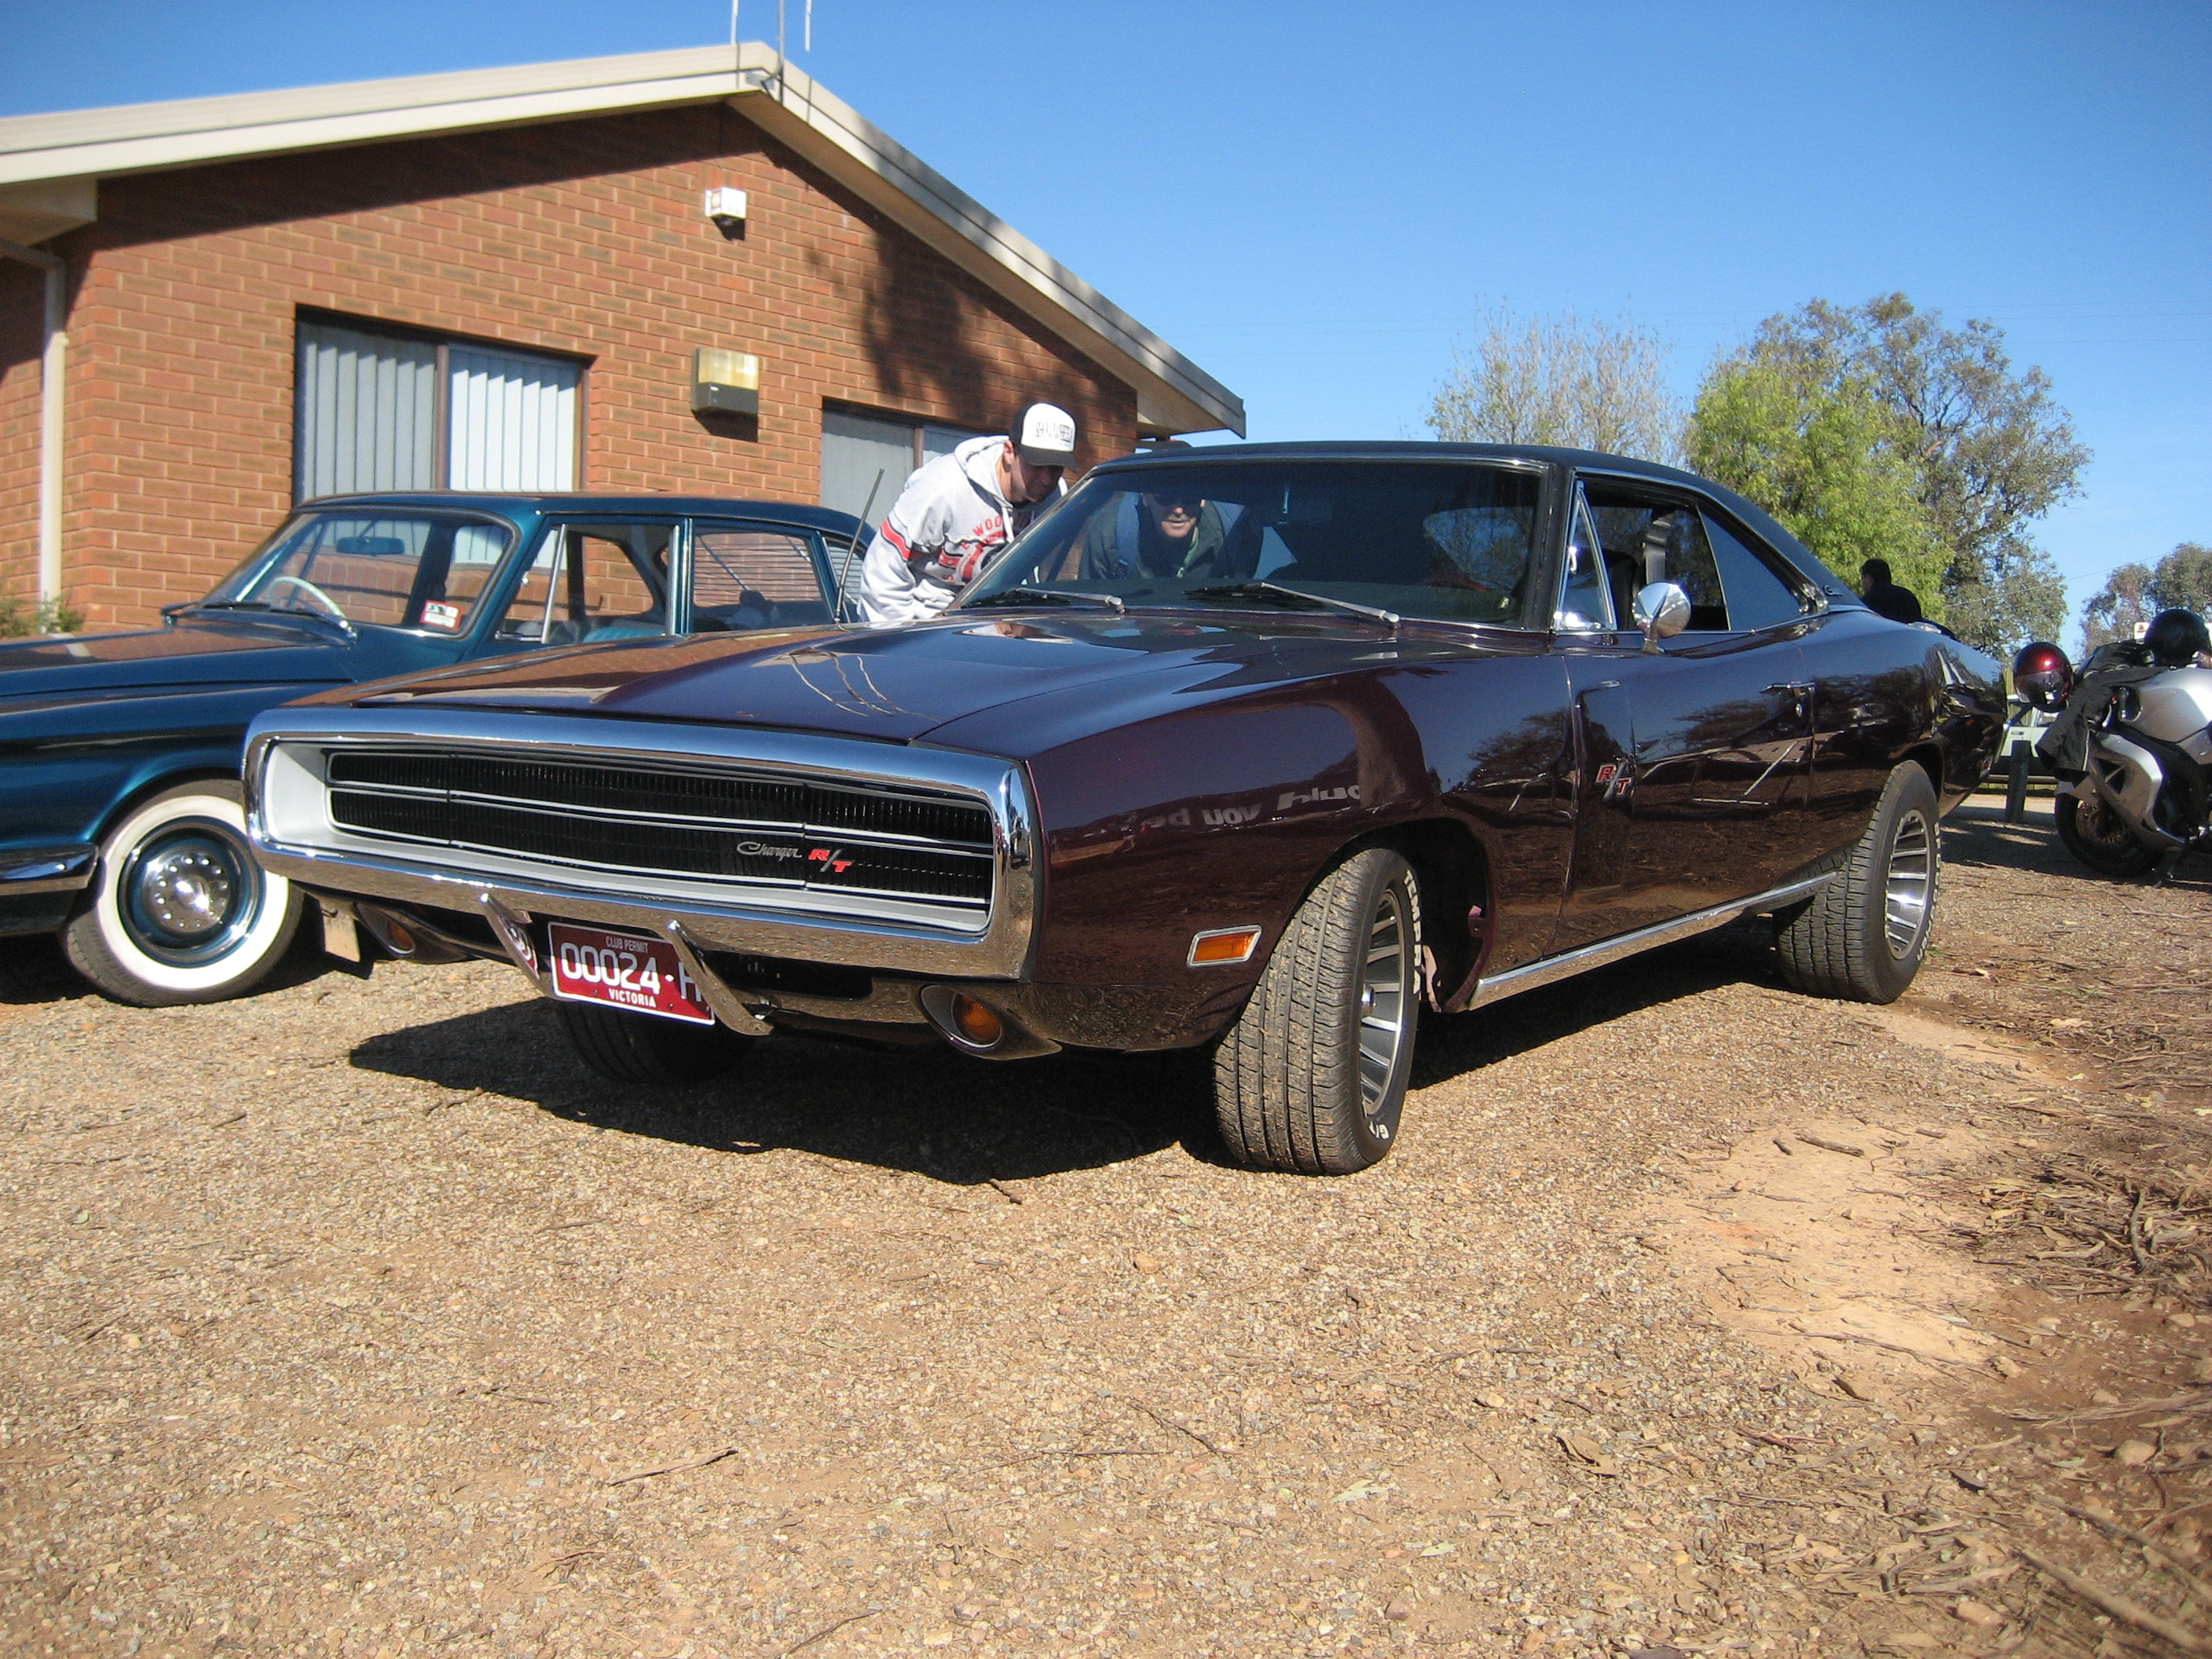 file:1970 dodge charger rt - wikimedia commons